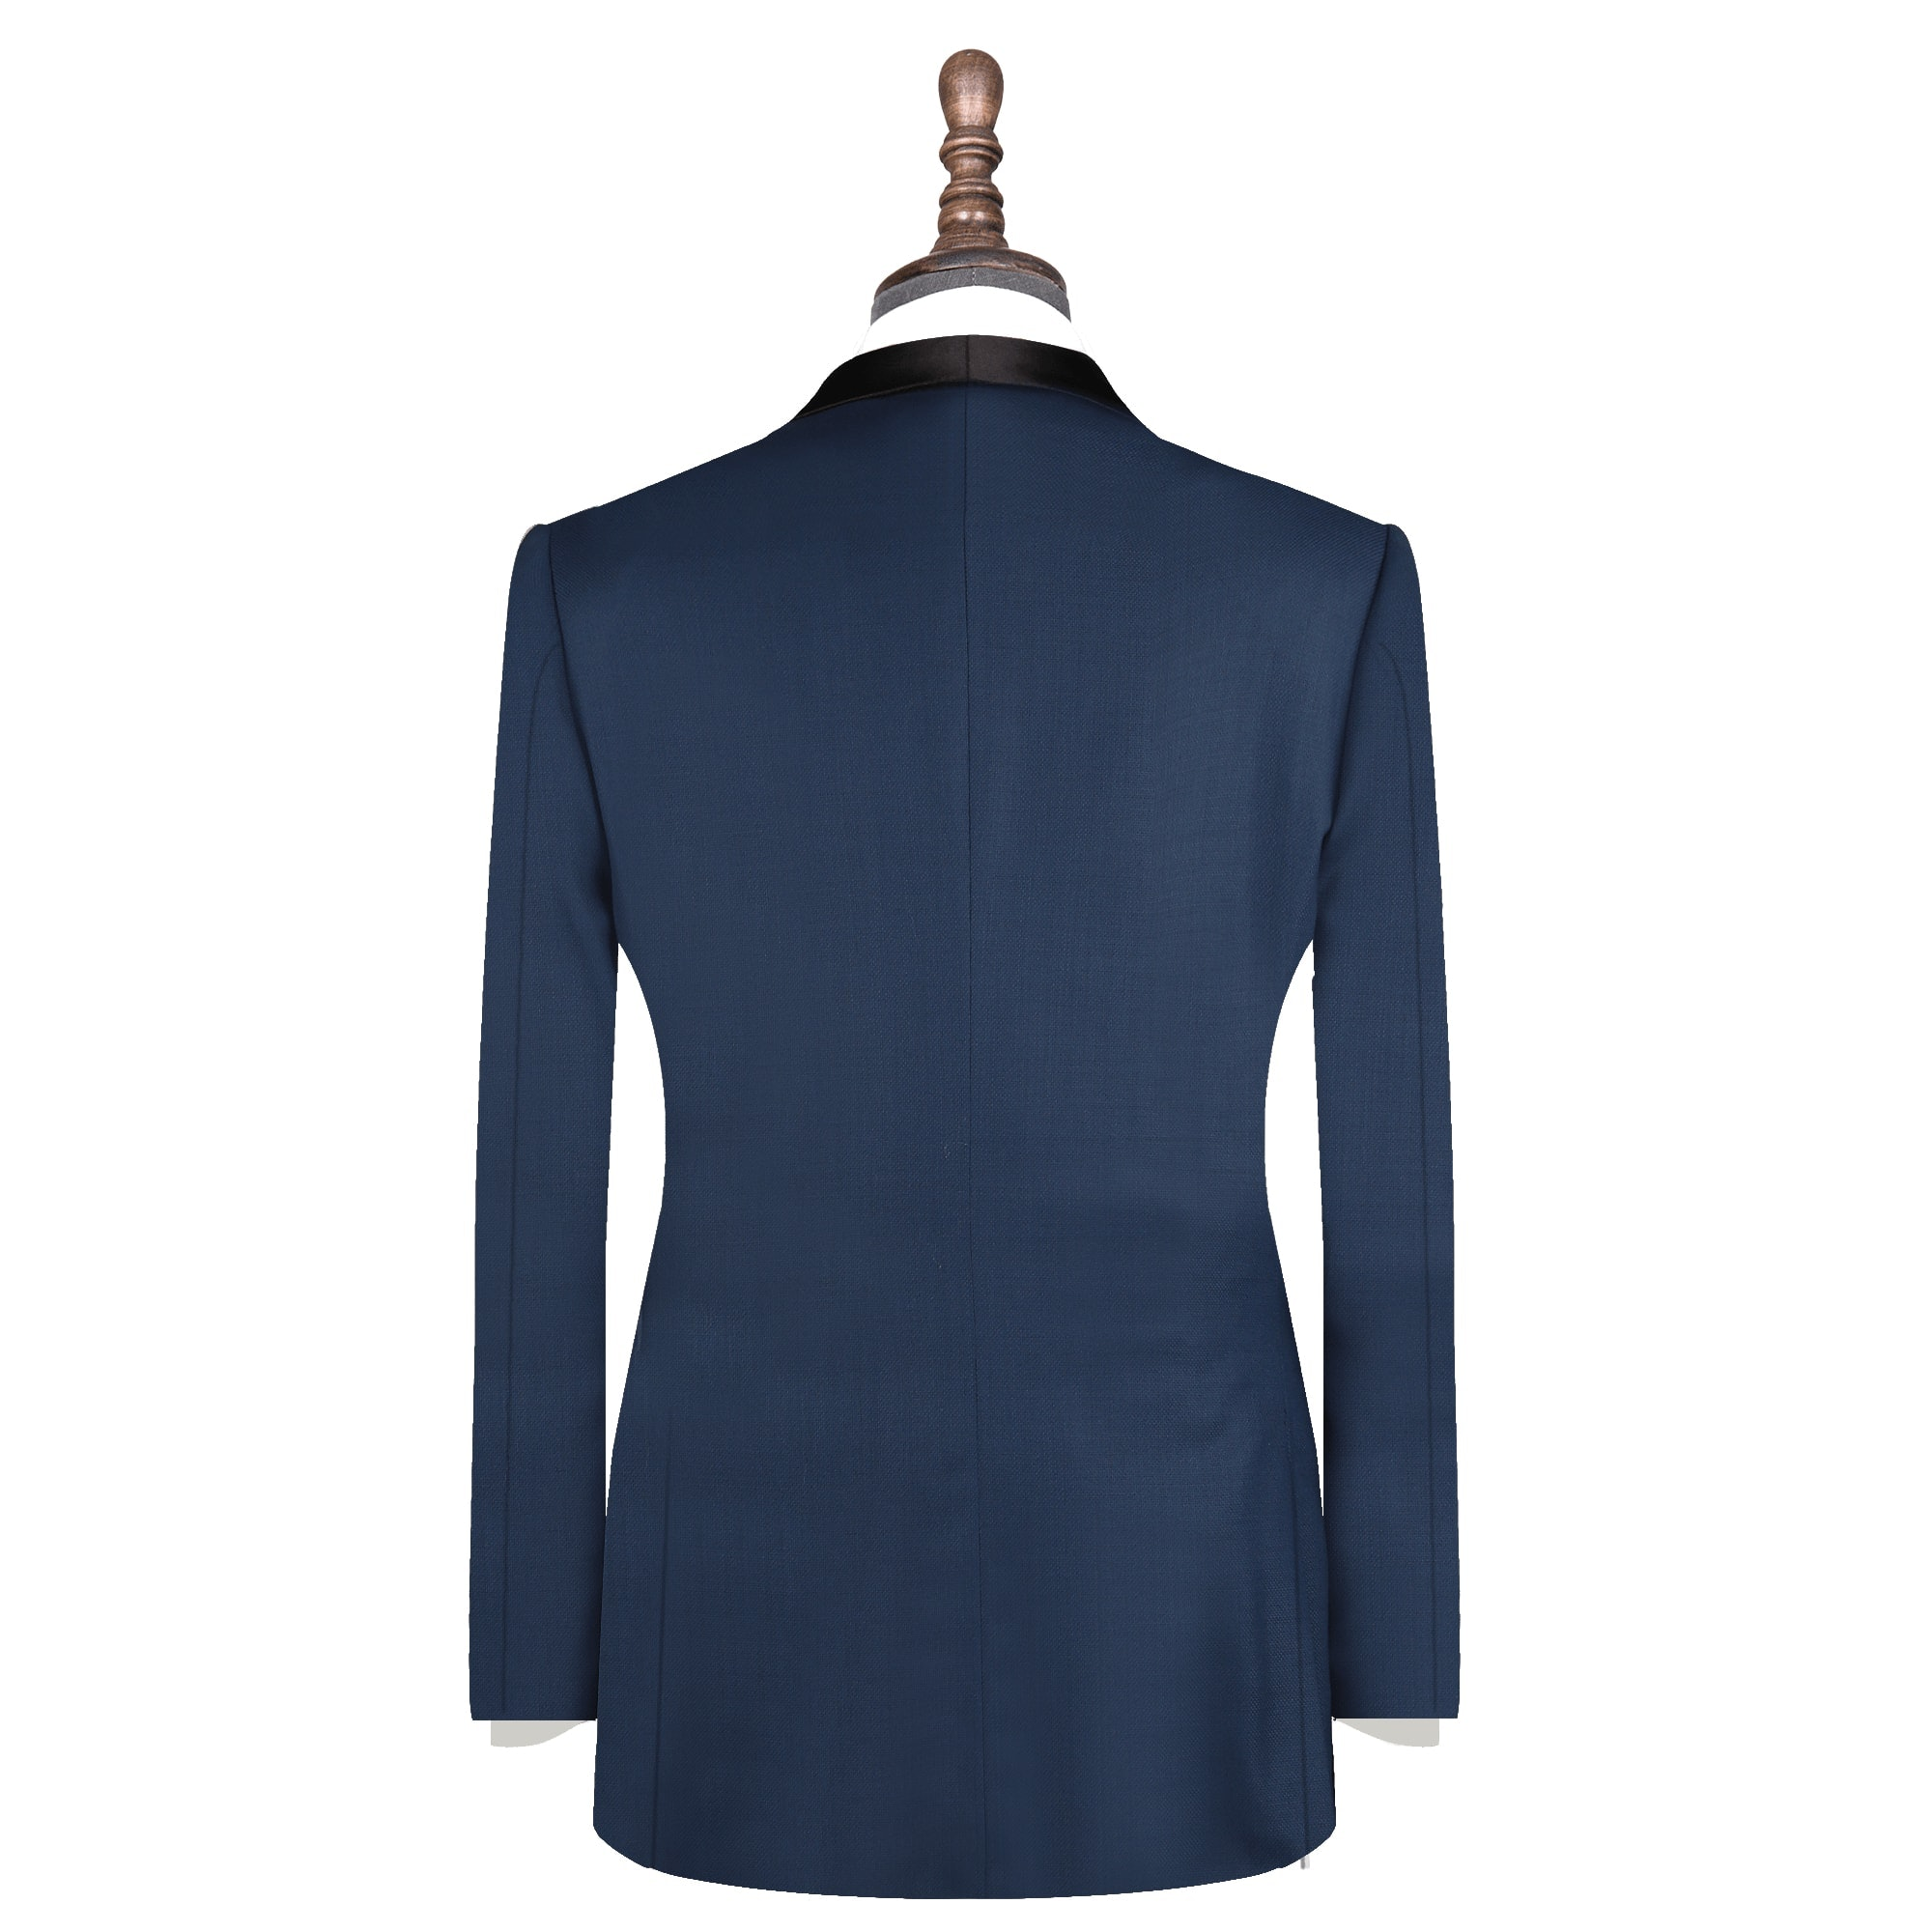 InStitchu Collection The Marlow Jacket